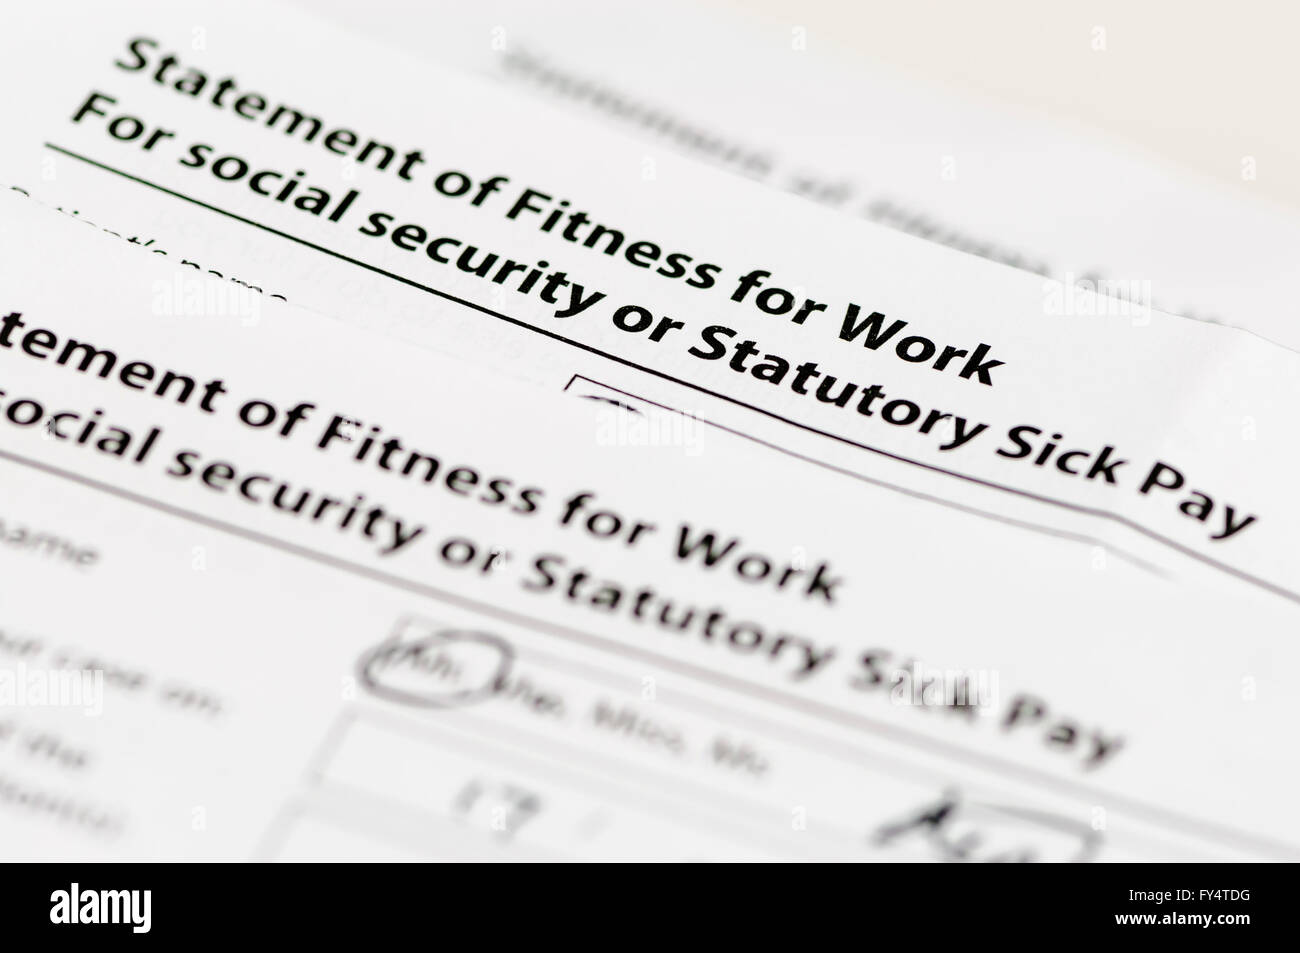 UK NHS Statement of Fitness to Work (or 'Sick Line') indicating the patient is not fit for work. - Stock Image